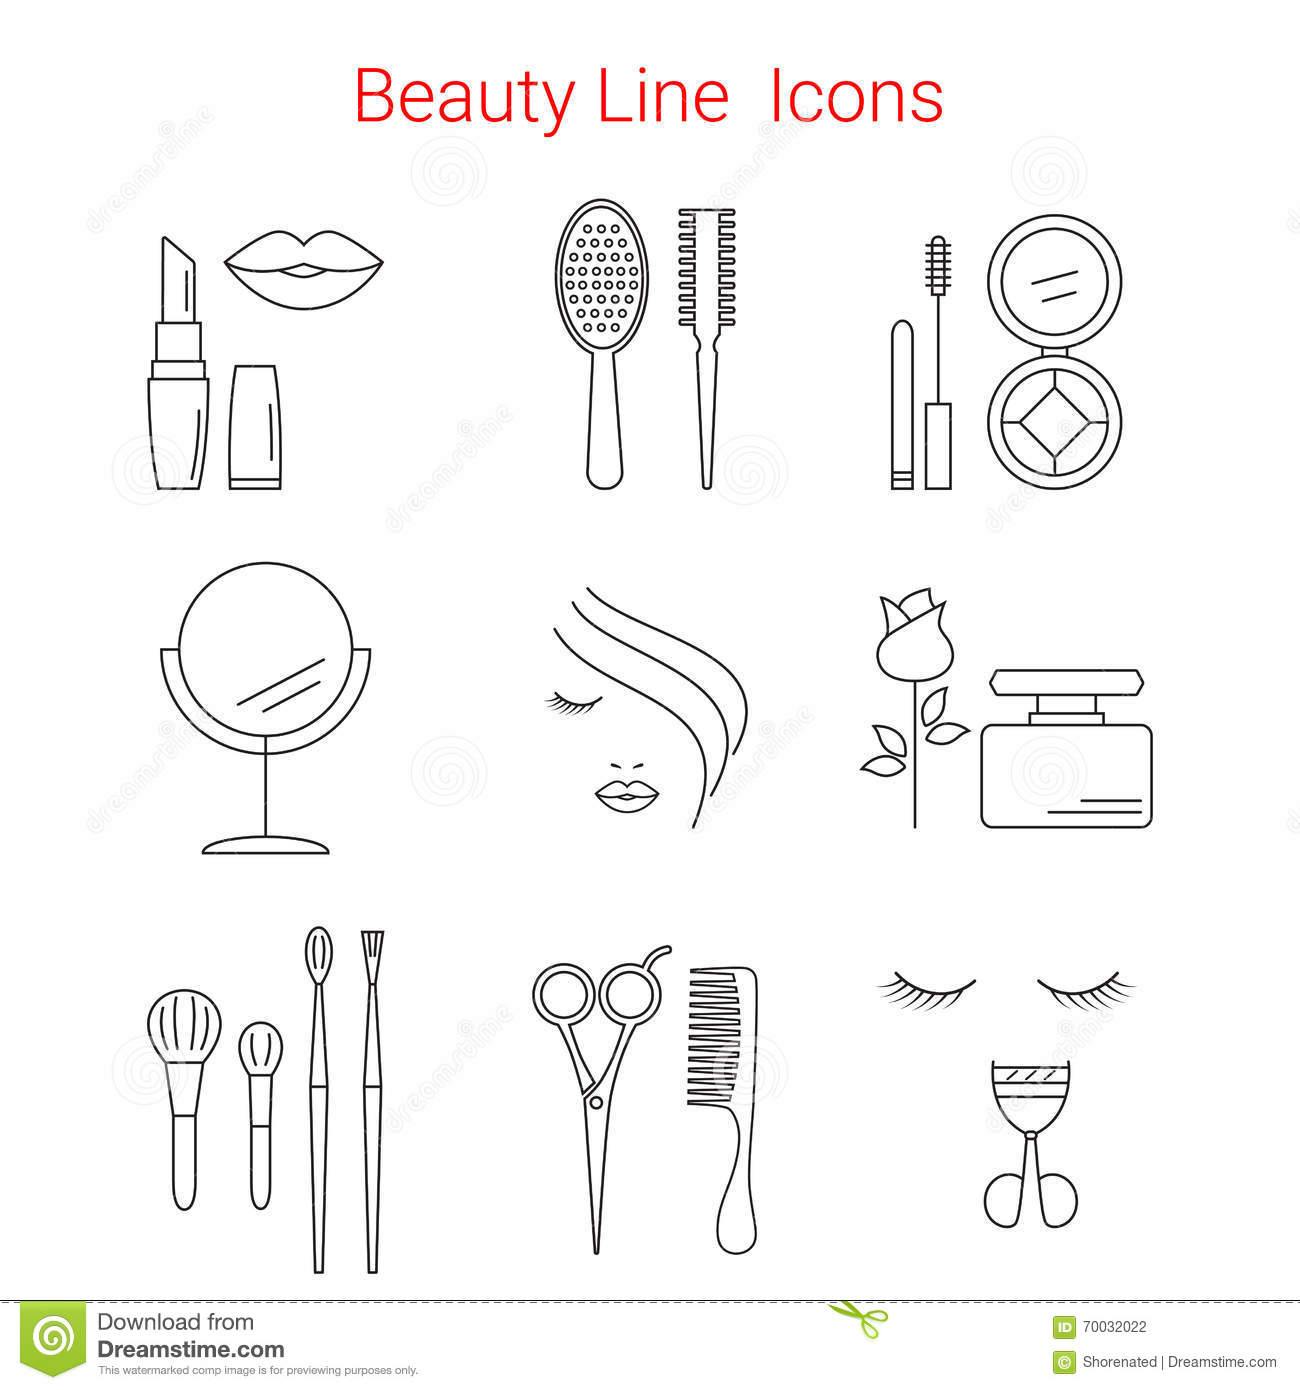 bestsfilete.cf is the premier online source for professional hair care, cosmetics, skincare products, nail care, bath & body and more!